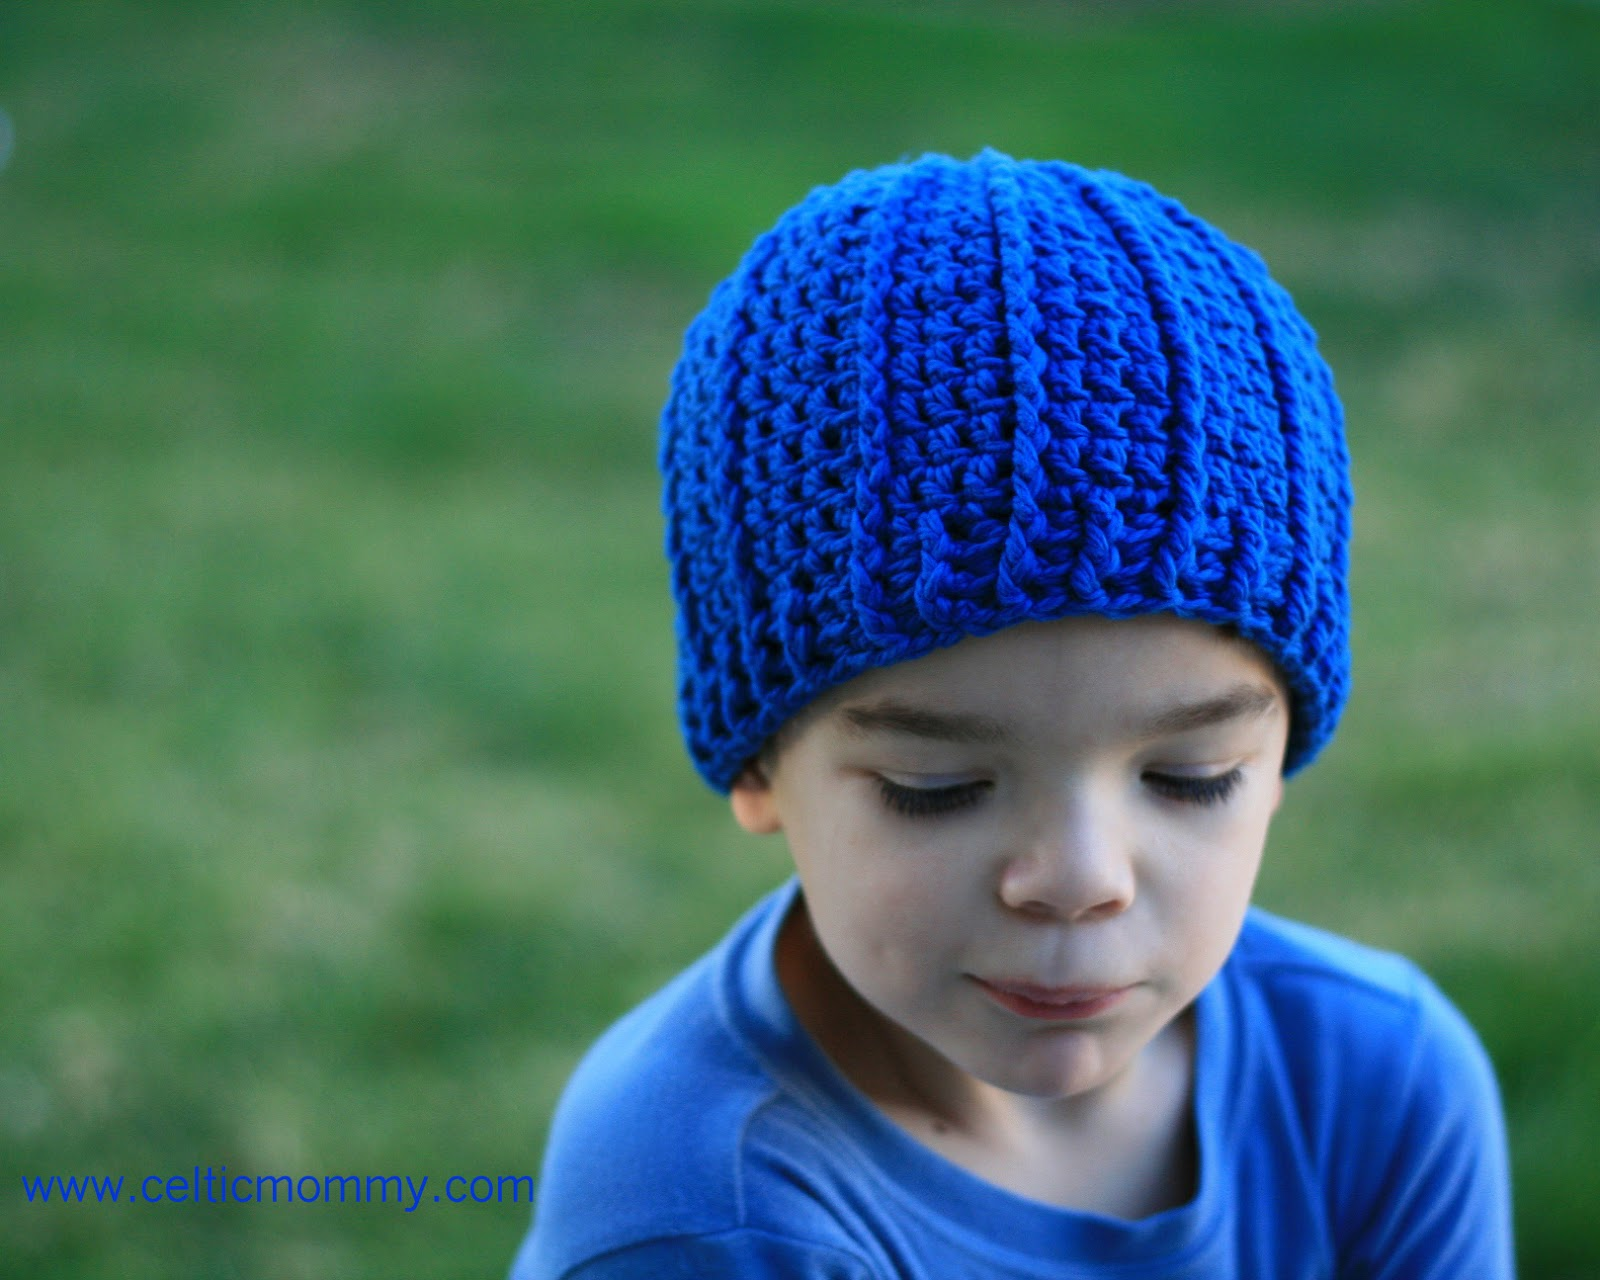 Crochet Child Hat Pattern Free : CelticMommy: Free crochet pattern: Rib wrapped cap for ...